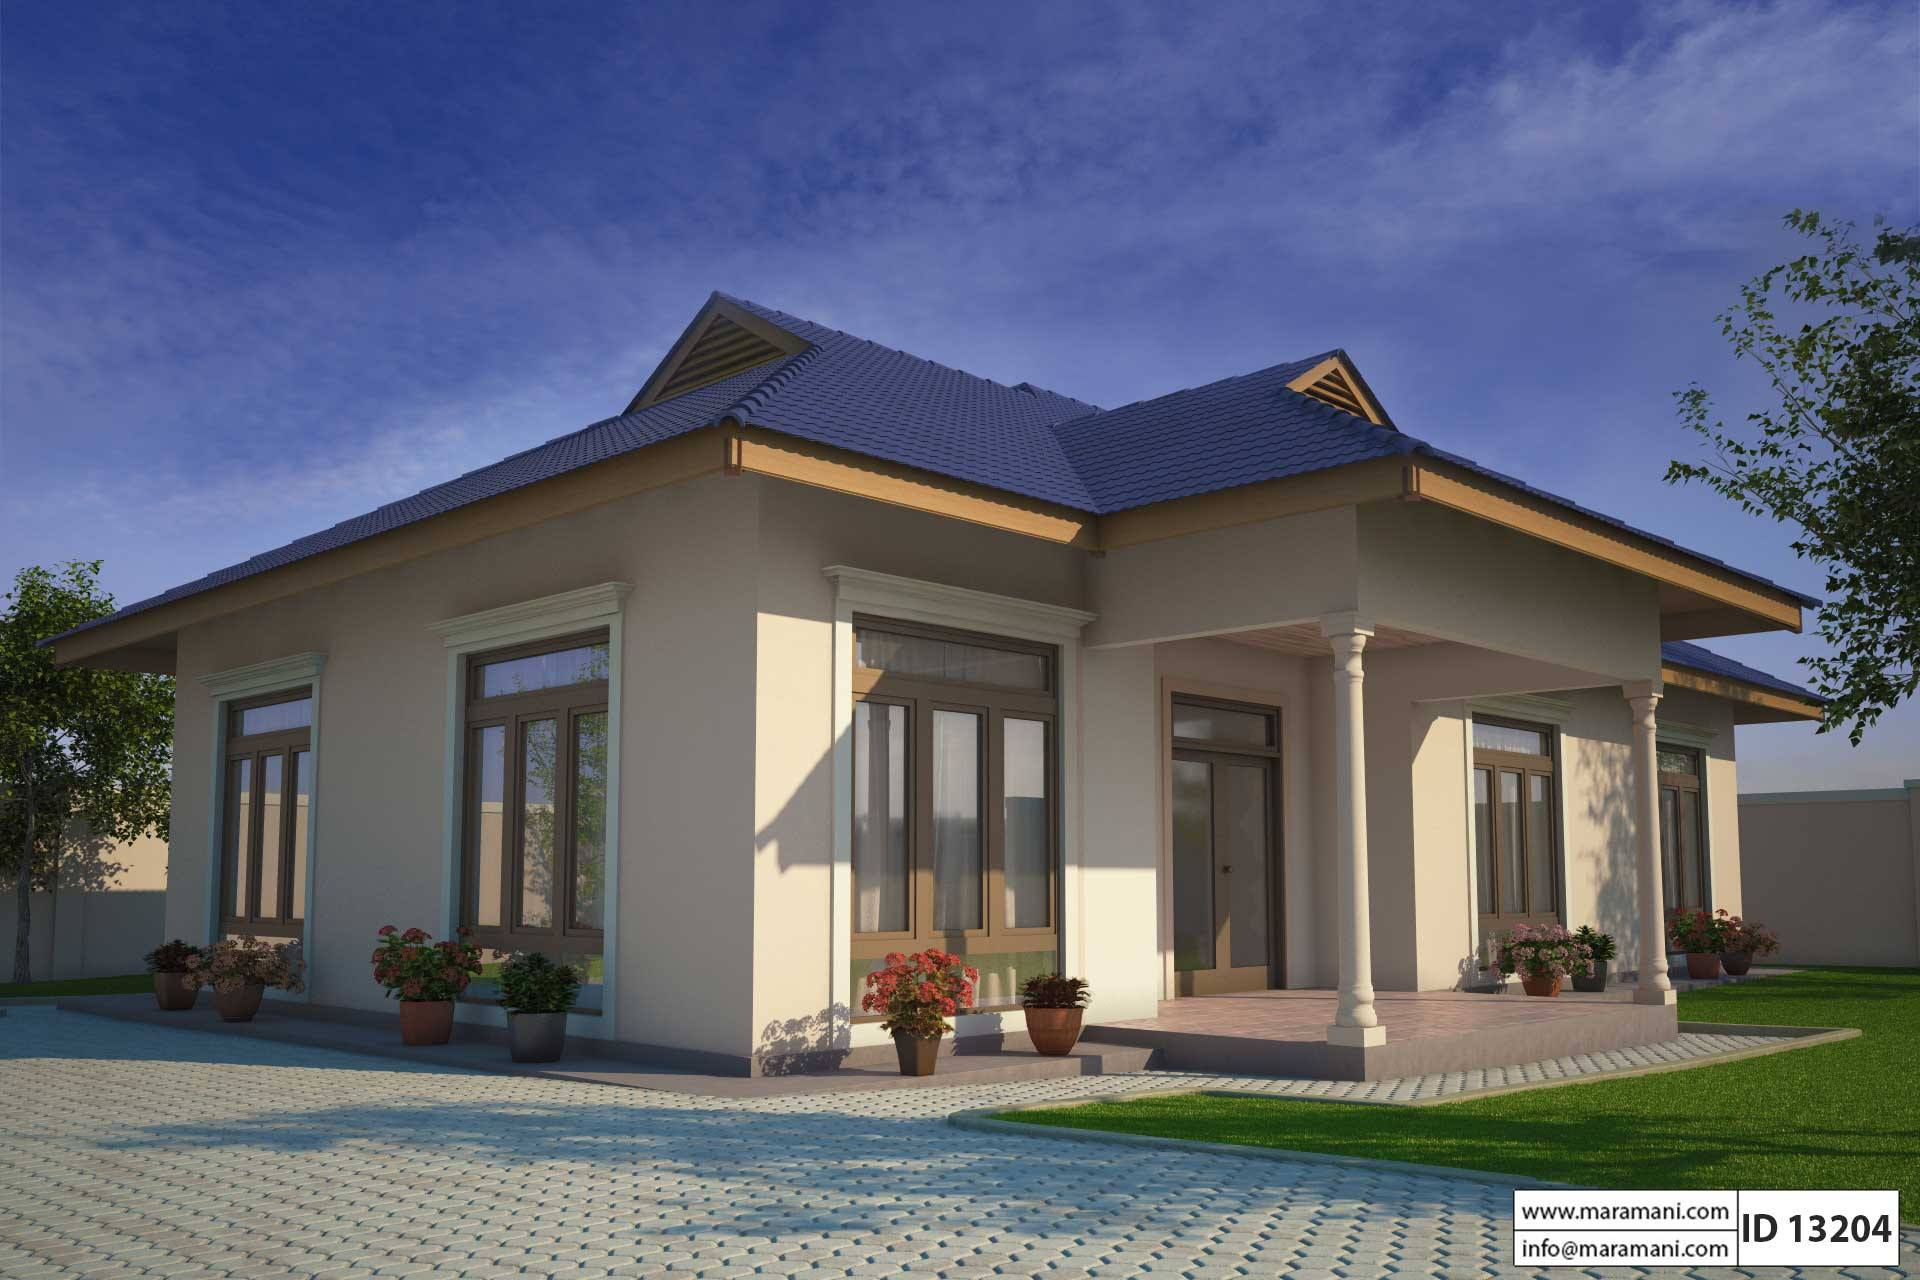 3 bedroom house plans. Small Three Bedroom House Plan  ID 13204 Floor Plans by Maramani